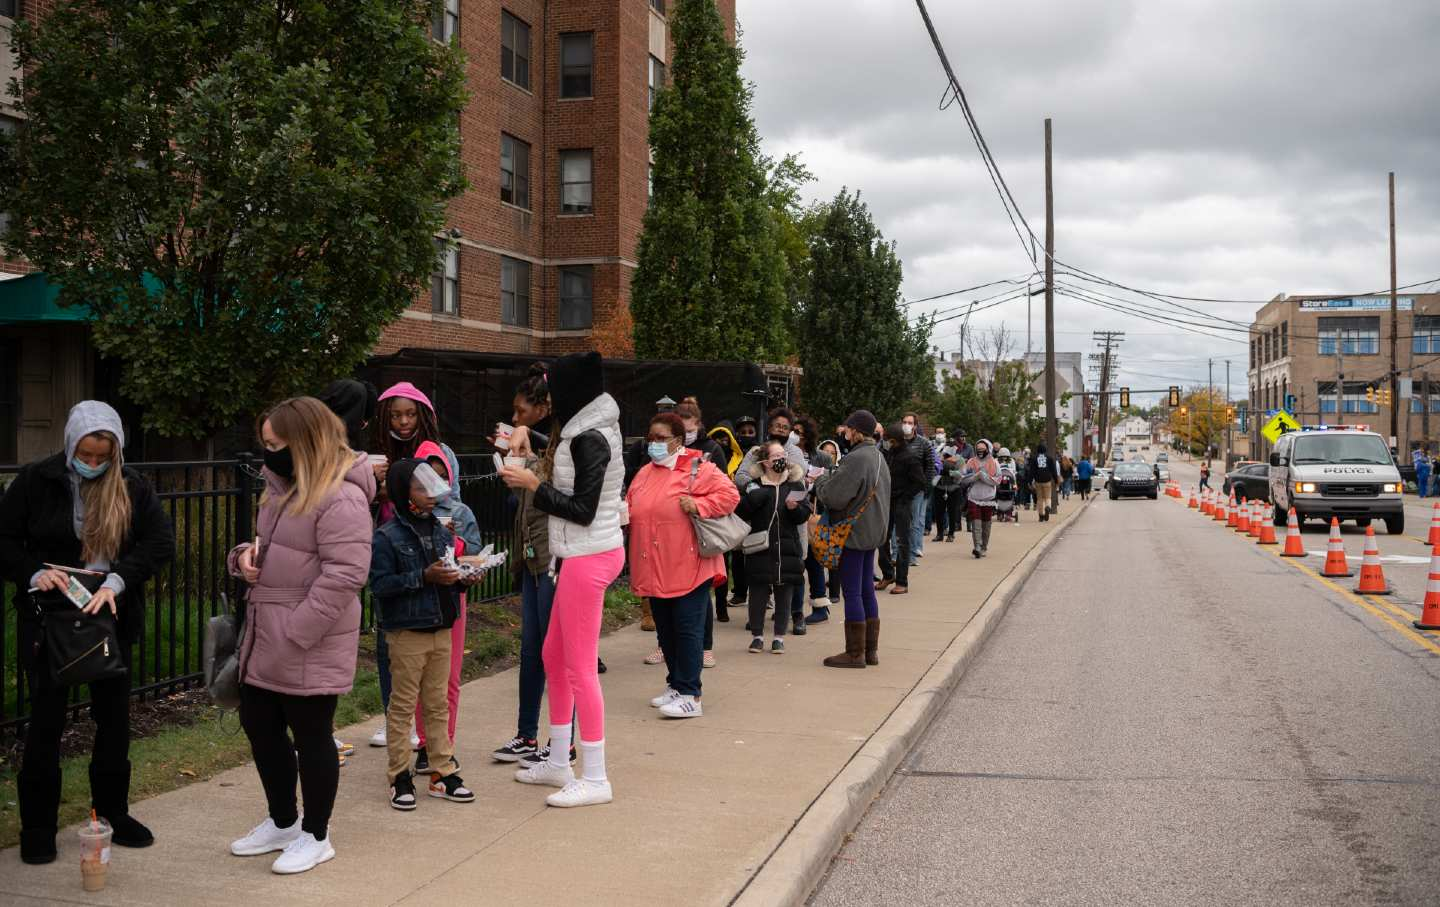 A line of voters stretches across a block on the left, while cars are seen driving down a road on the right.